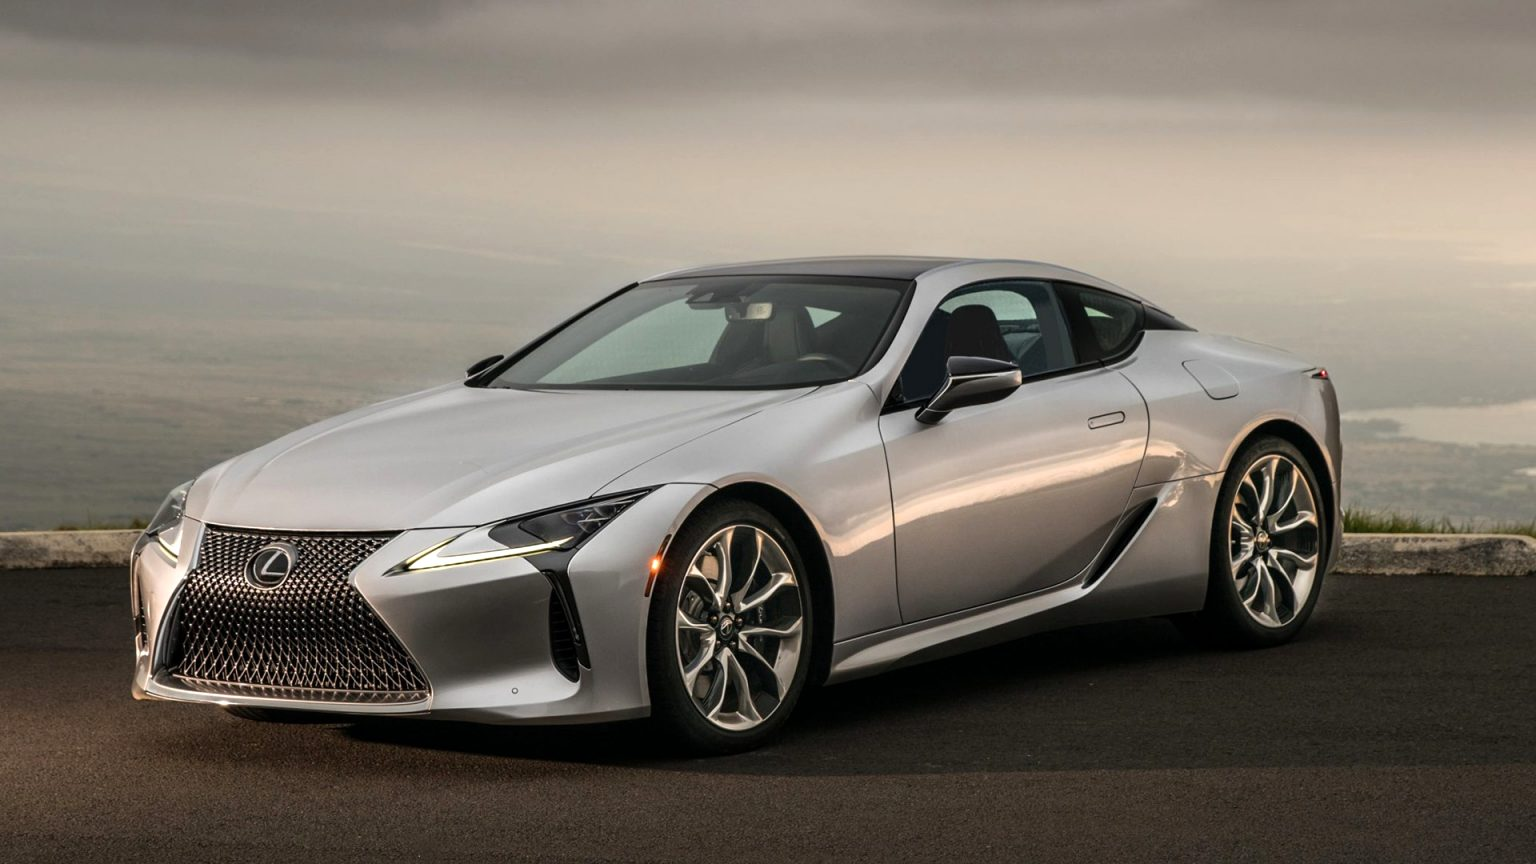 2021 lexus two door coupe price Redesign and Review